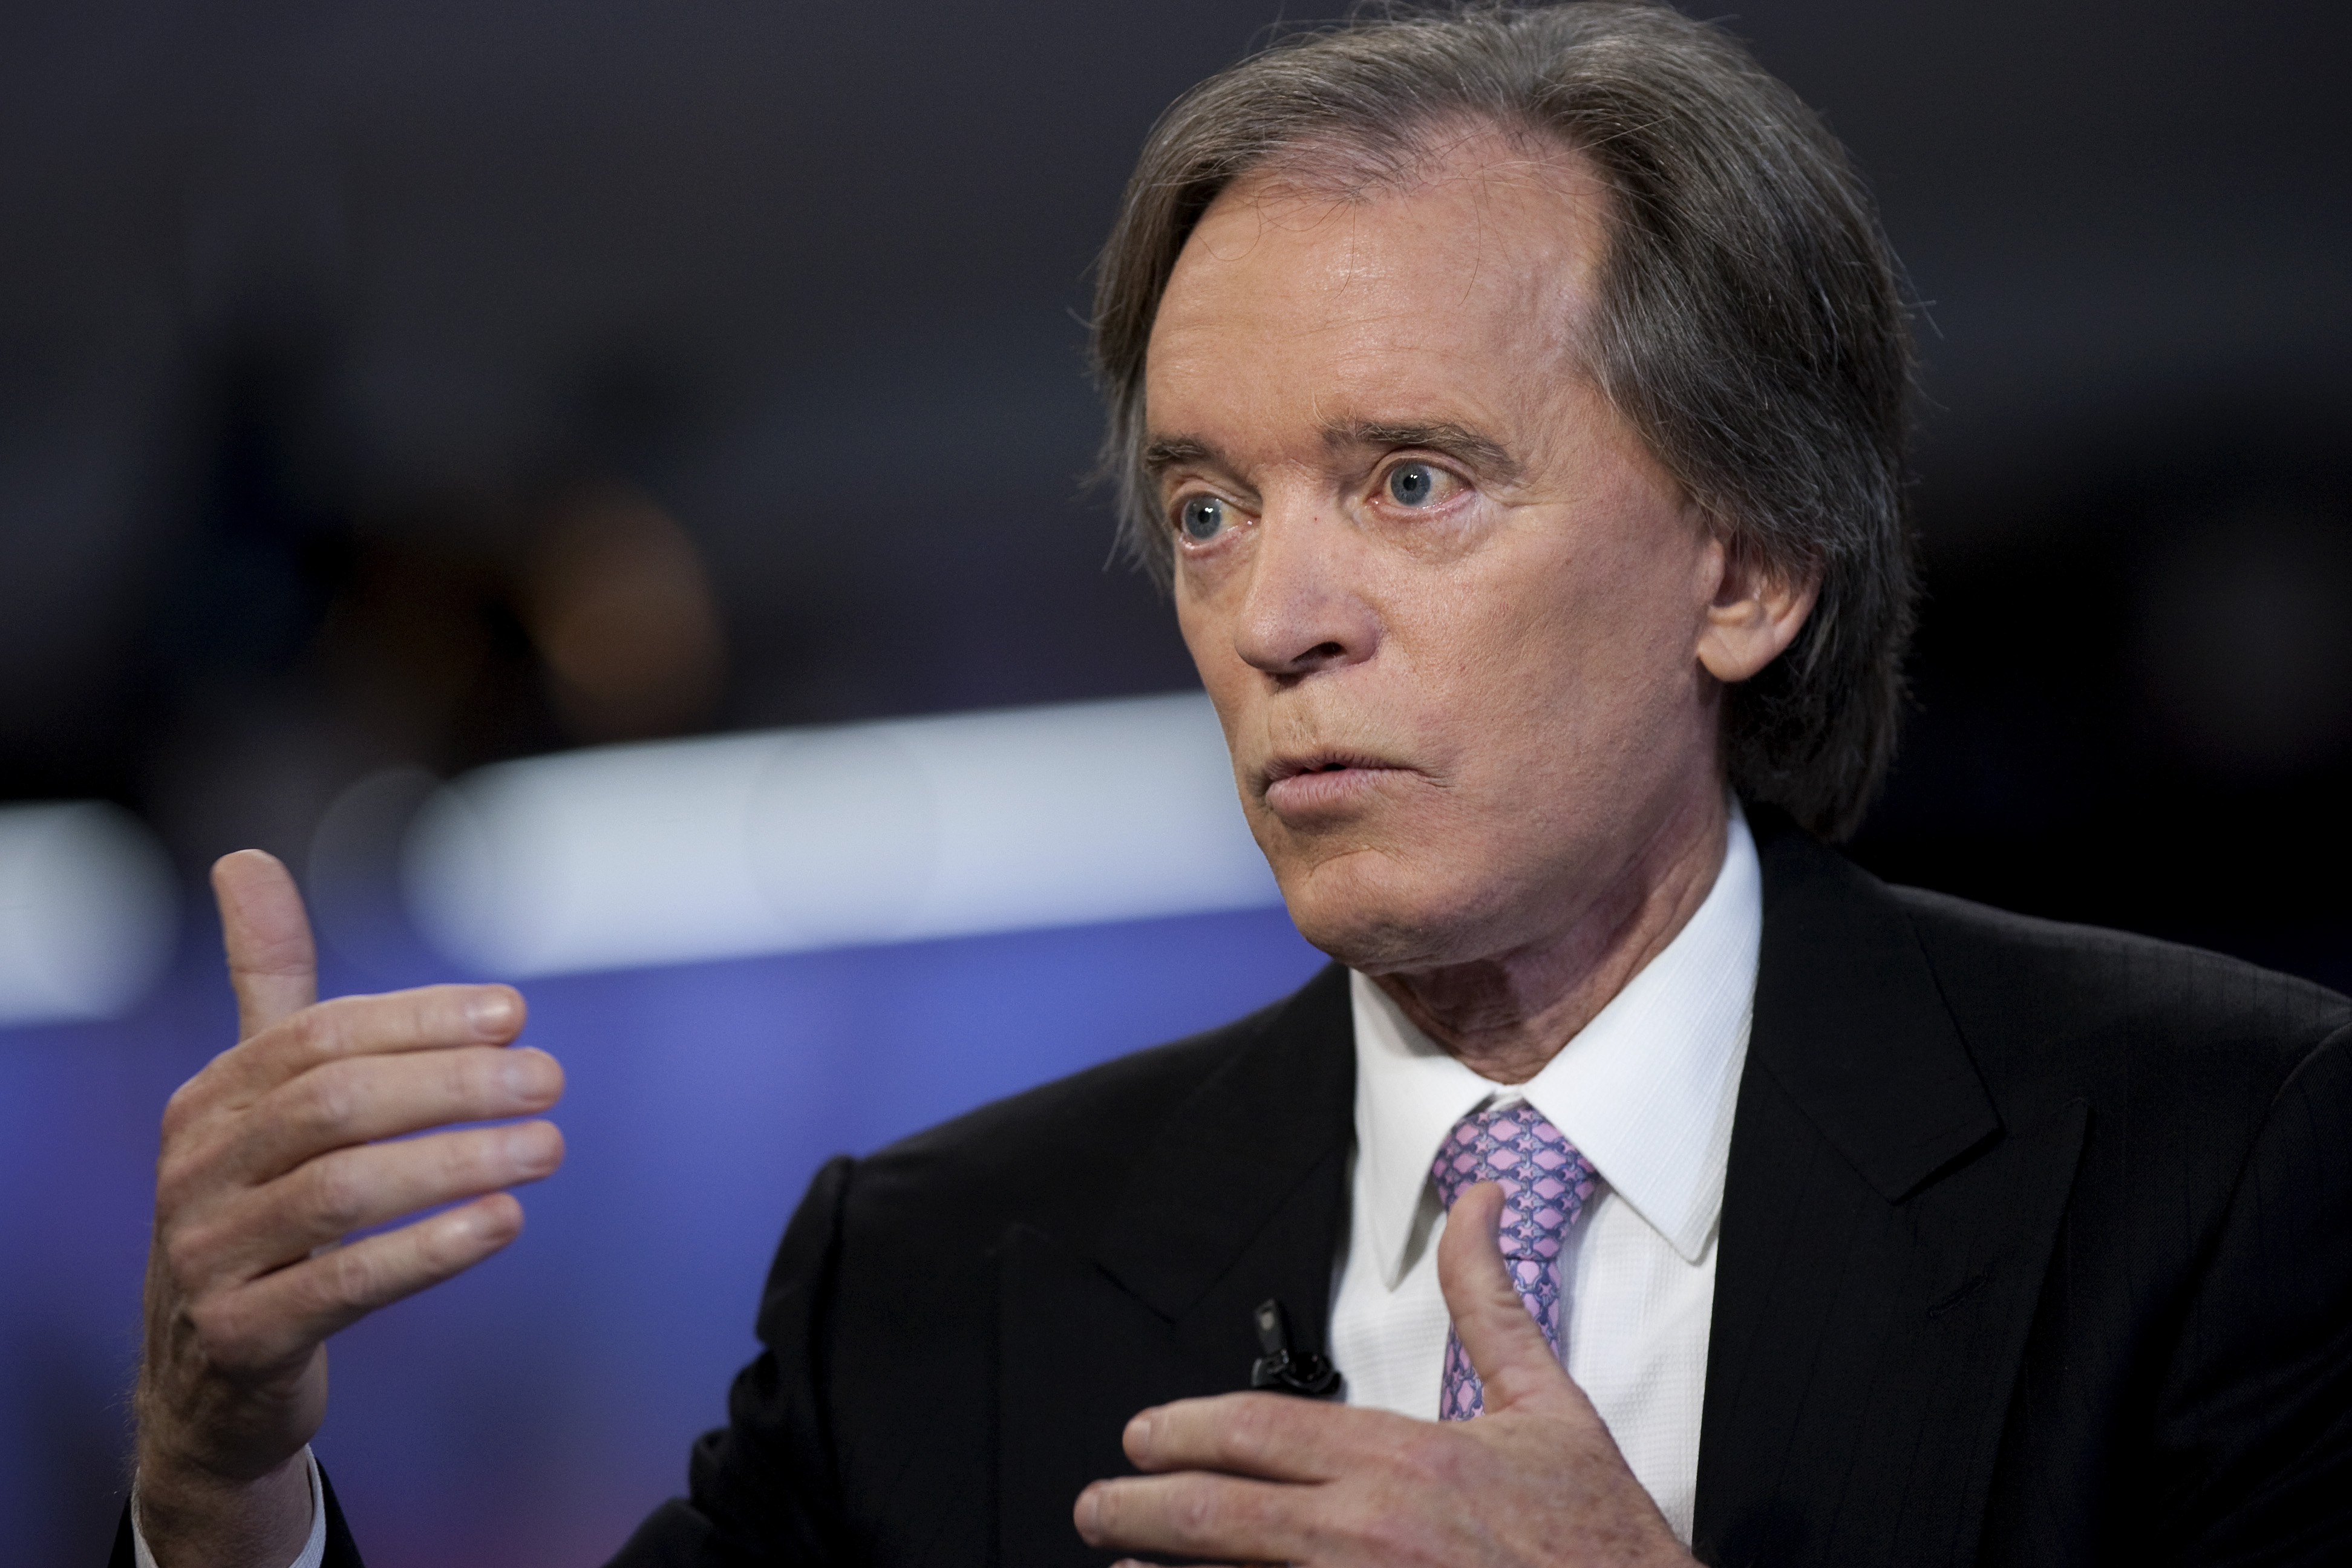 Bond investor Bill Gross of Janus Capital